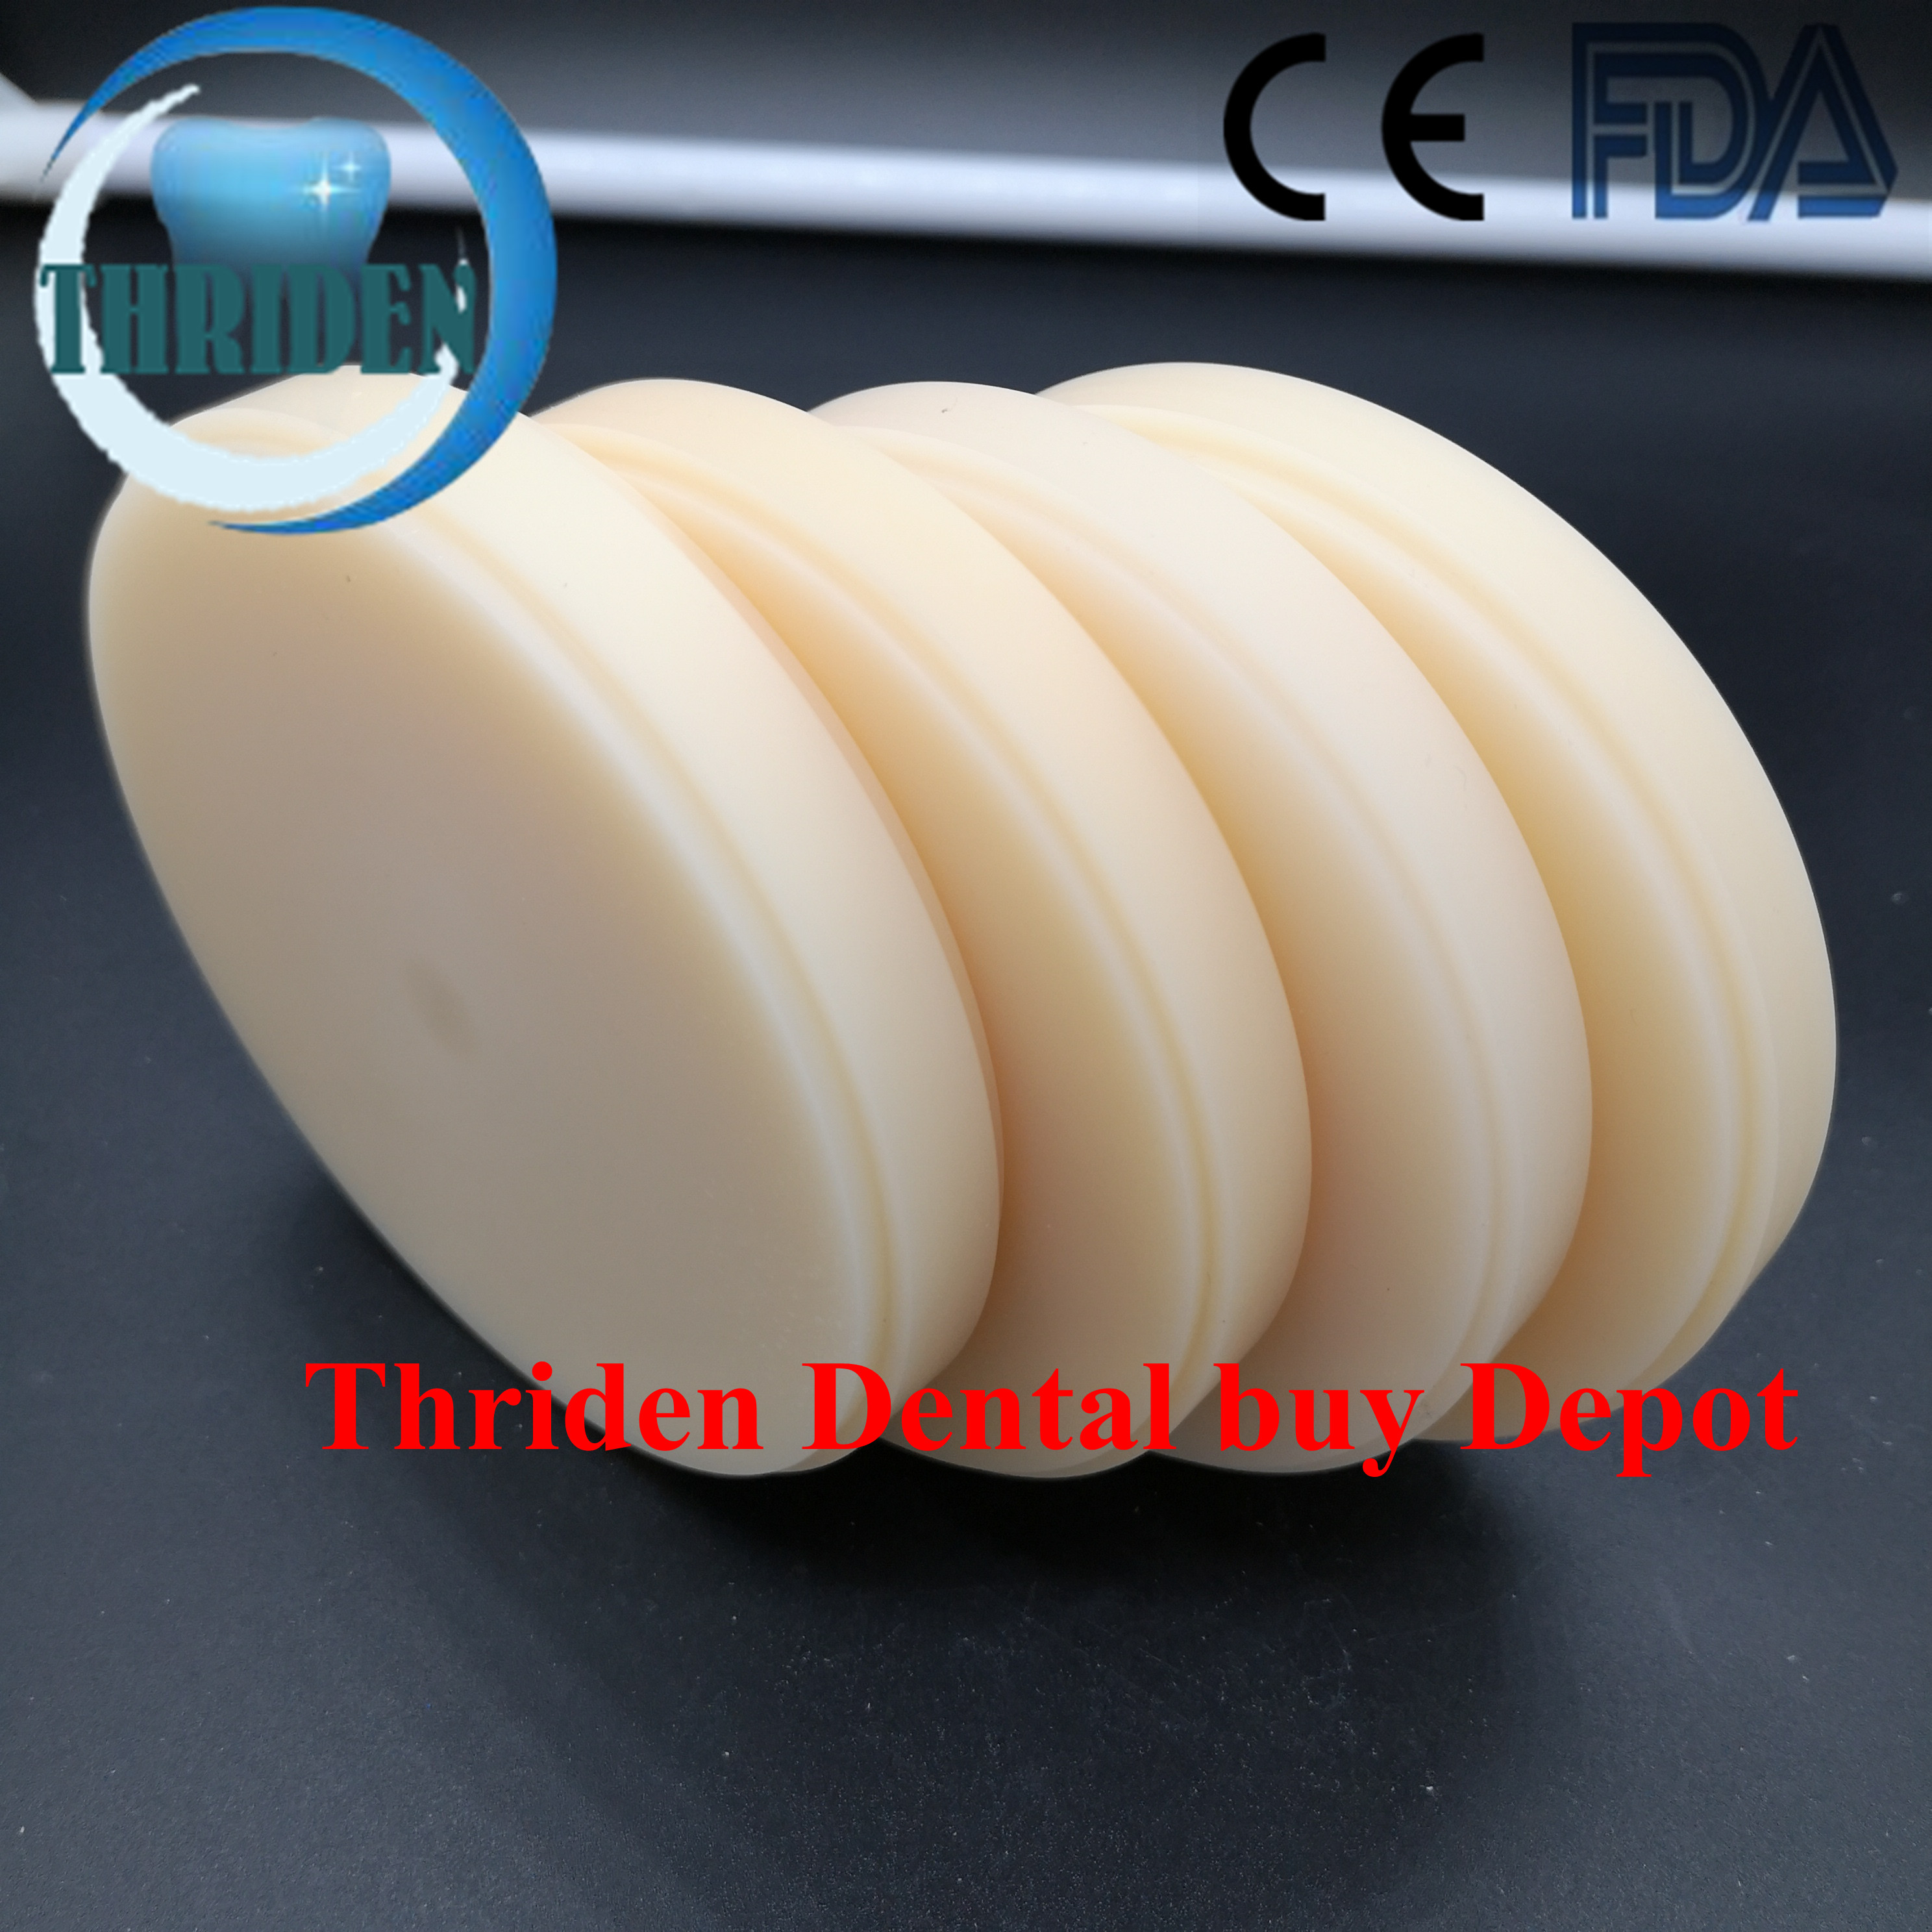 1piece OD98*16mm Dental flexible PMMA disc for temporary crown partial denture frameworks and other metal-free removable1piece OD98*16mm Dental flexible PMMA disc for temporary crown partial denture frameworks and other metal-free removable